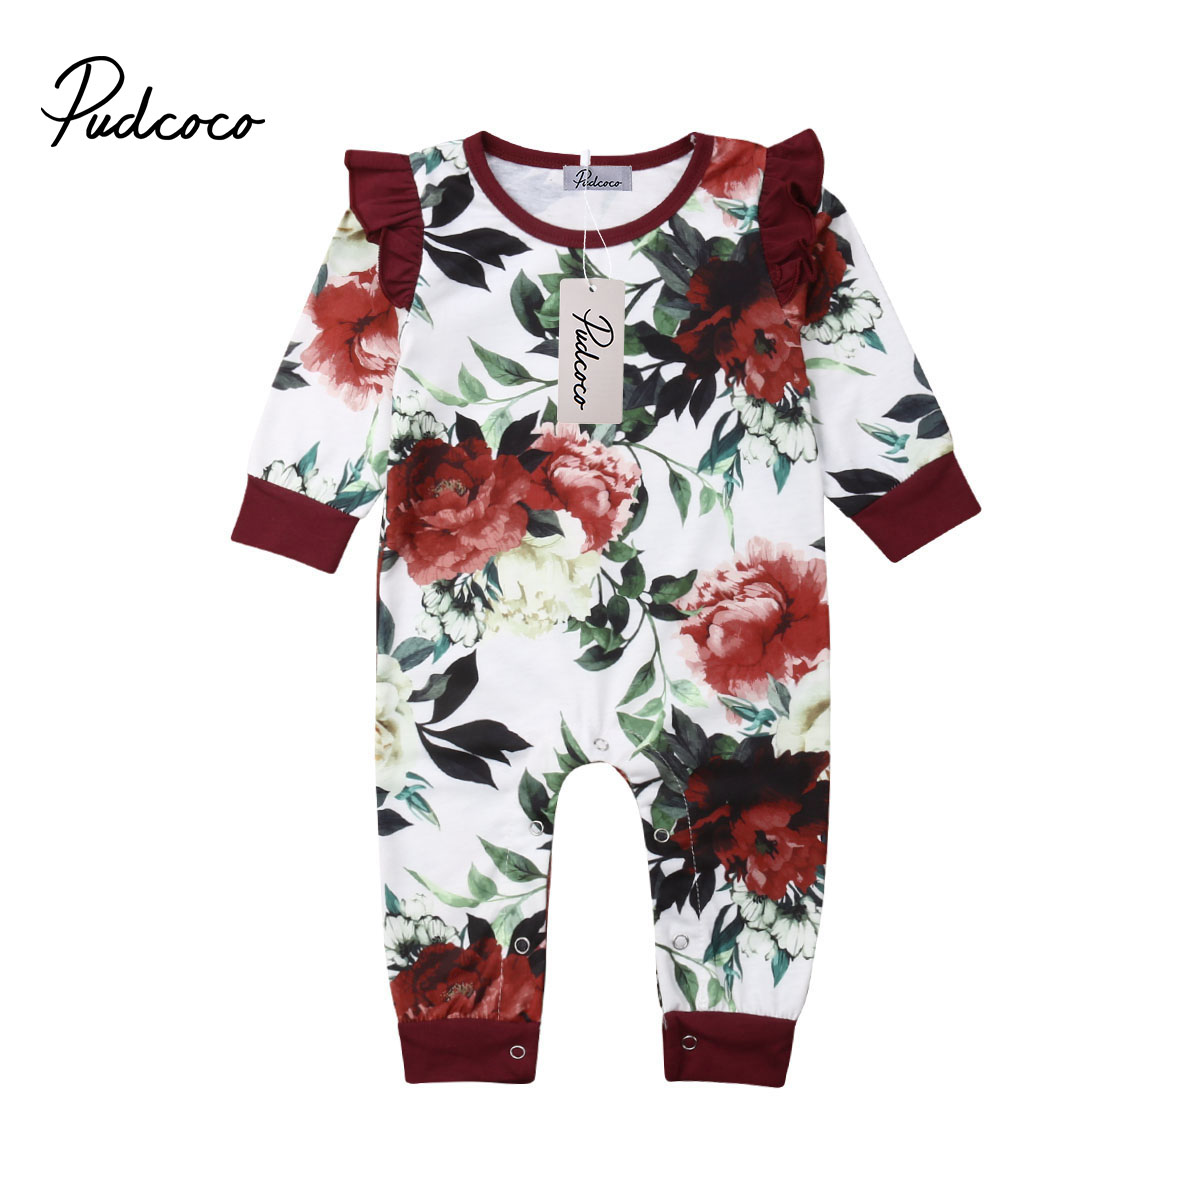 2019 Fashion Floral Baby Girl Long Sleeve Flower   Romper   Jumpsuit Outfit for Newborn Baby Girl Infant Children Cloth Kid Clothing